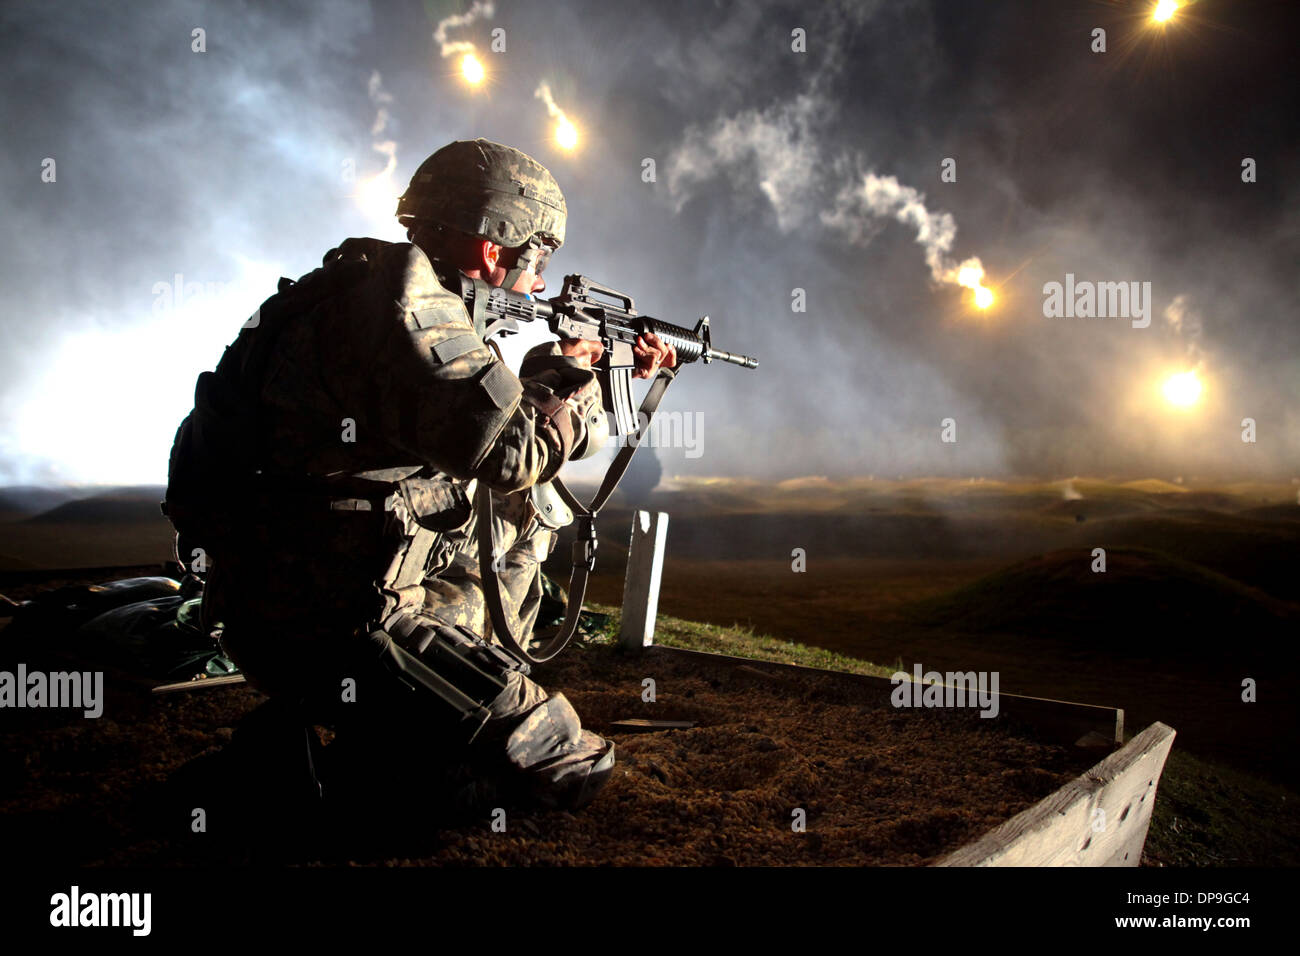 U.S. soldier watches his firing lane for targets during the Army's 10th annual Best Warrior Competition - Stock Image